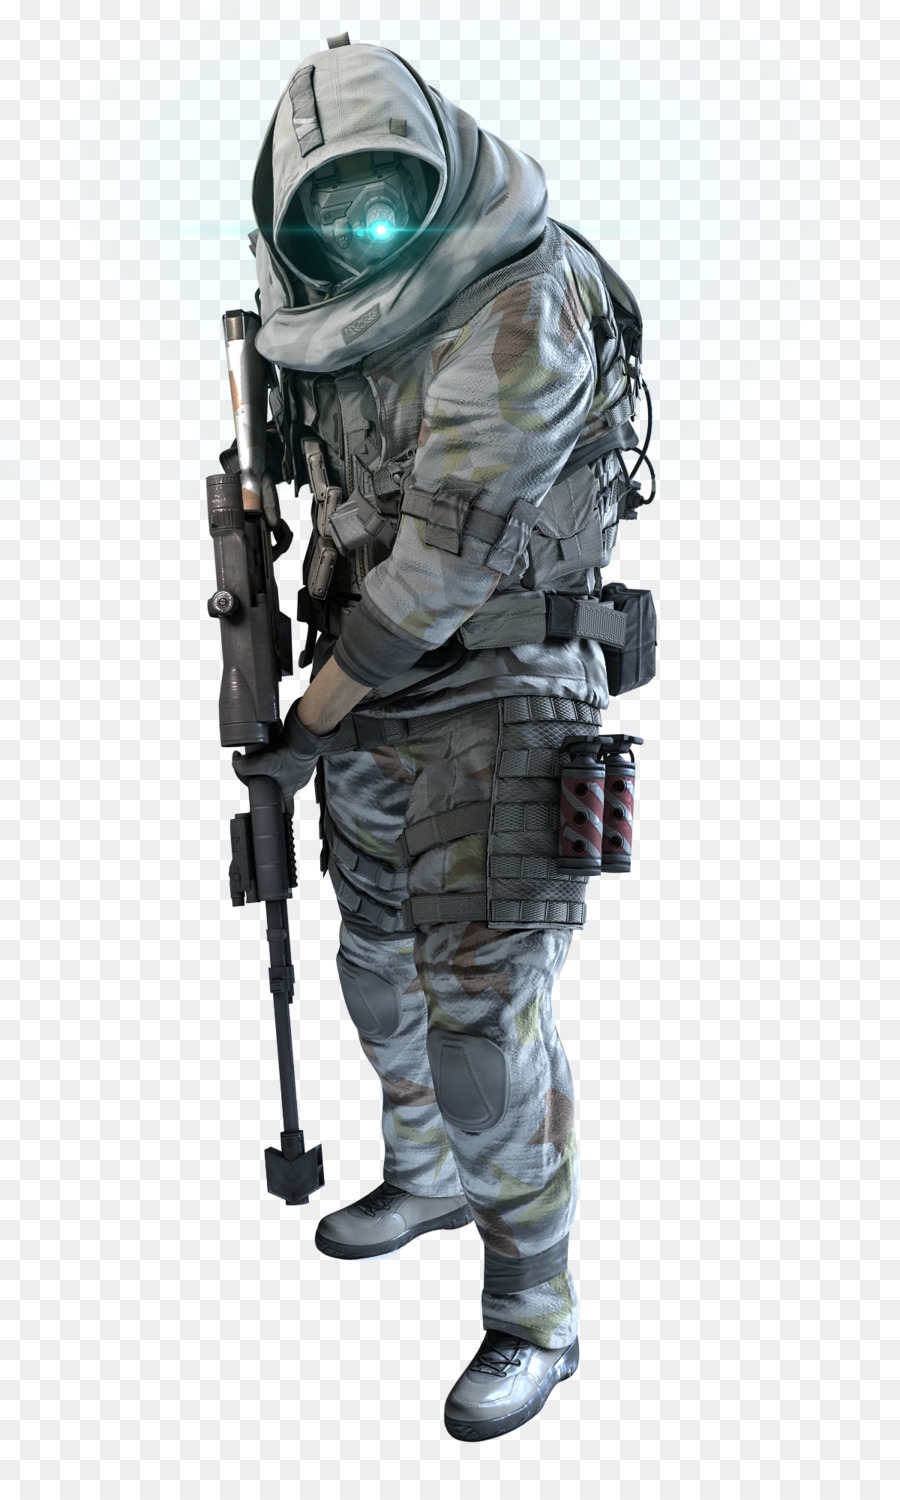 Future soldier clipart freeuse download Soldier Cartoon png download - 1200*2000 - Free Transparent Soldier ... freeuse download